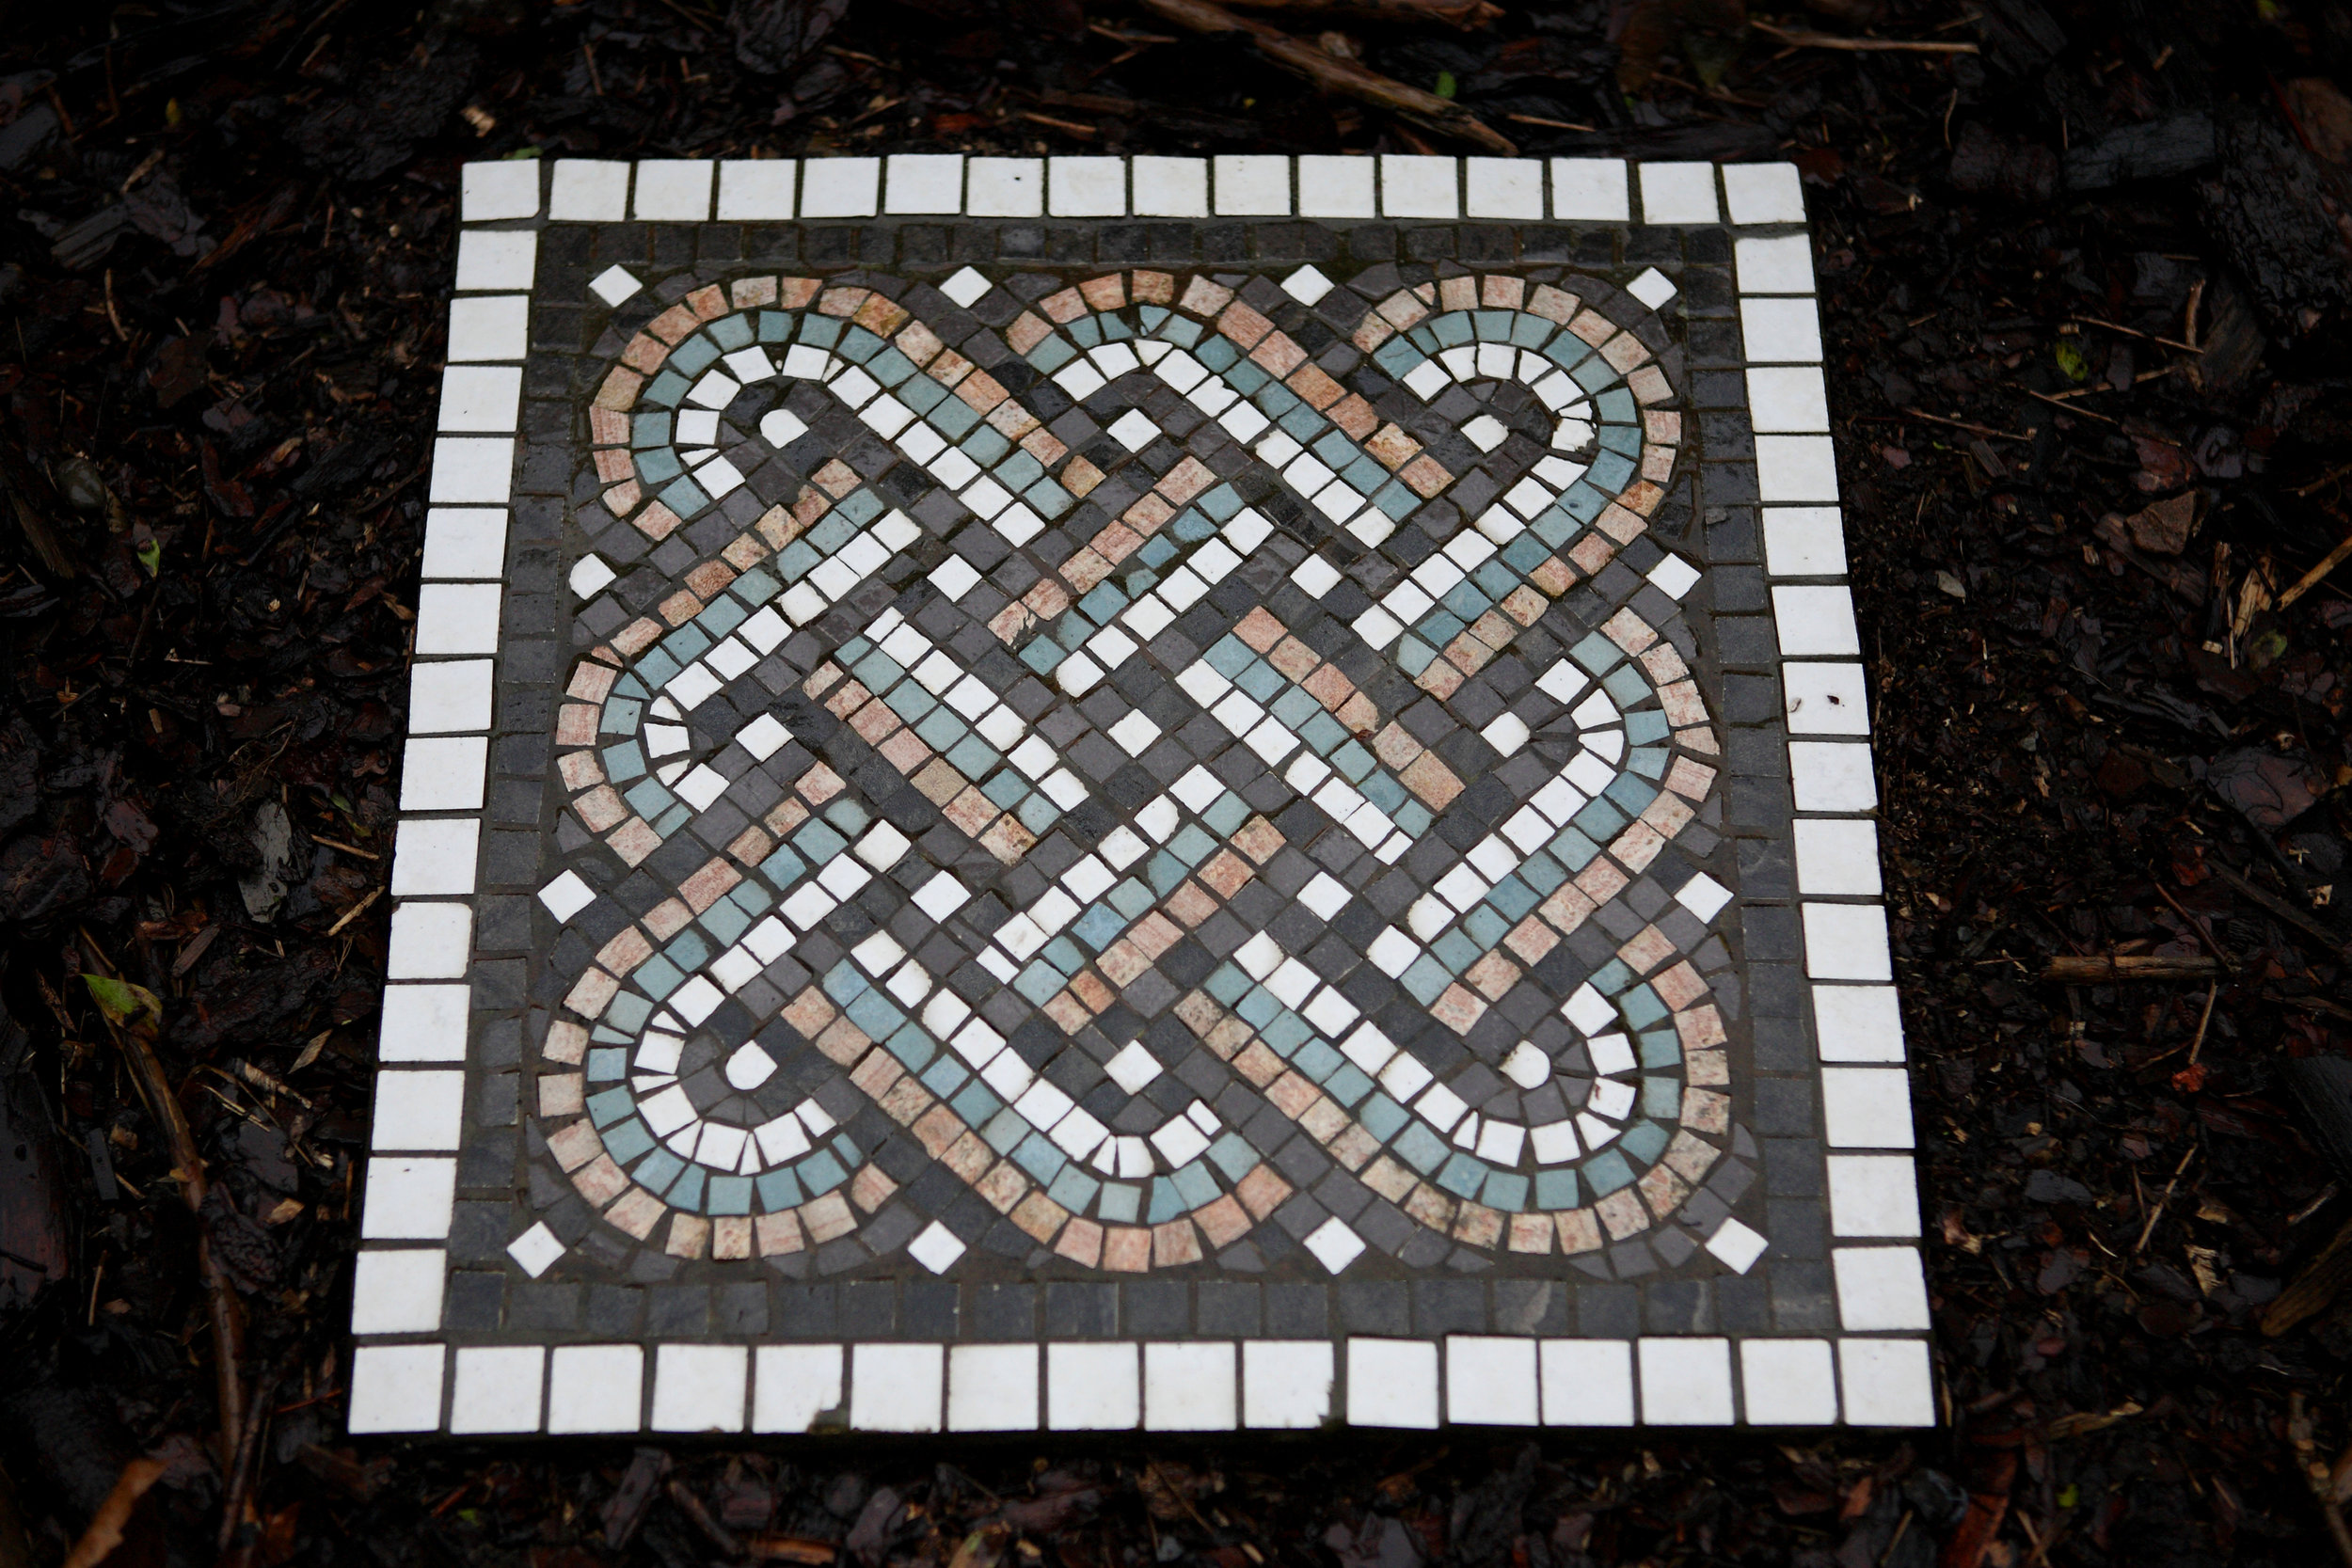 Roman knot garden slab mosaic (from the garden slab course)